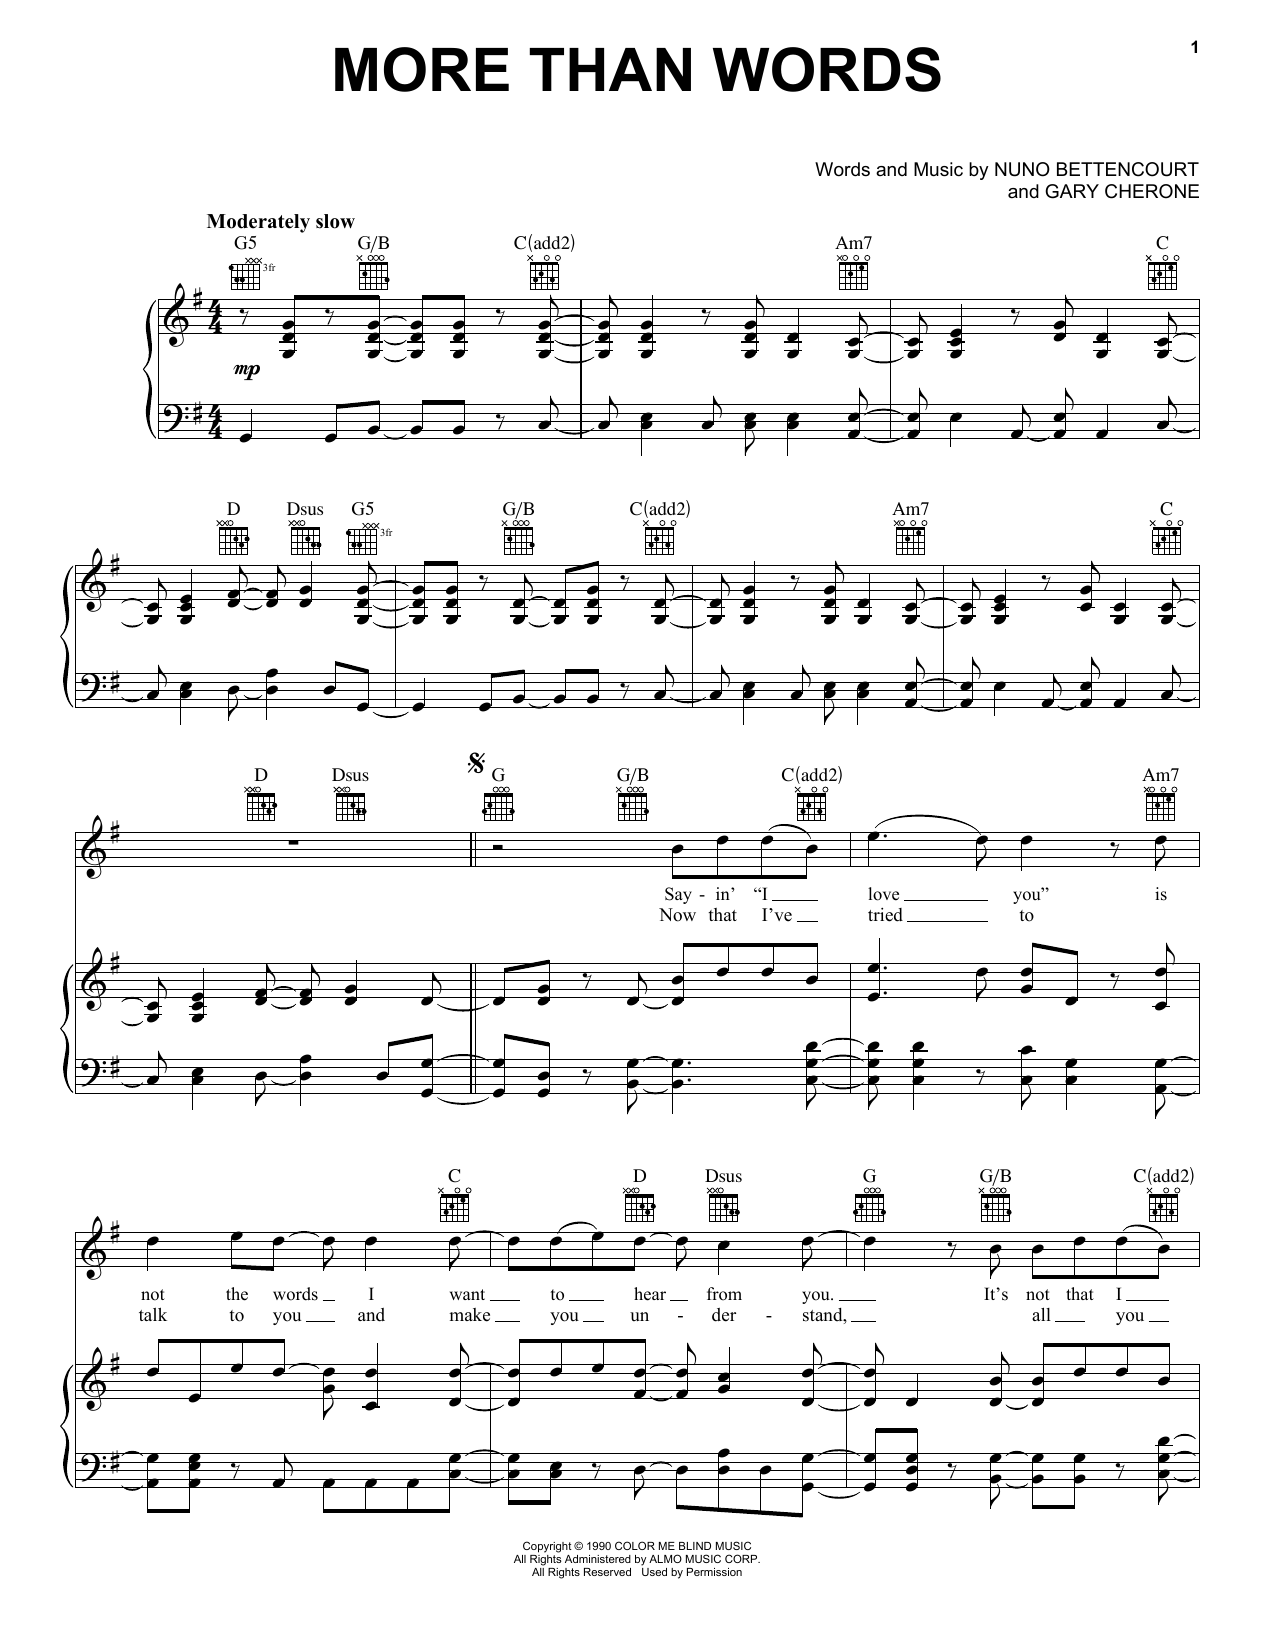 Guitar guitar tabs more than words : more than words chords piano